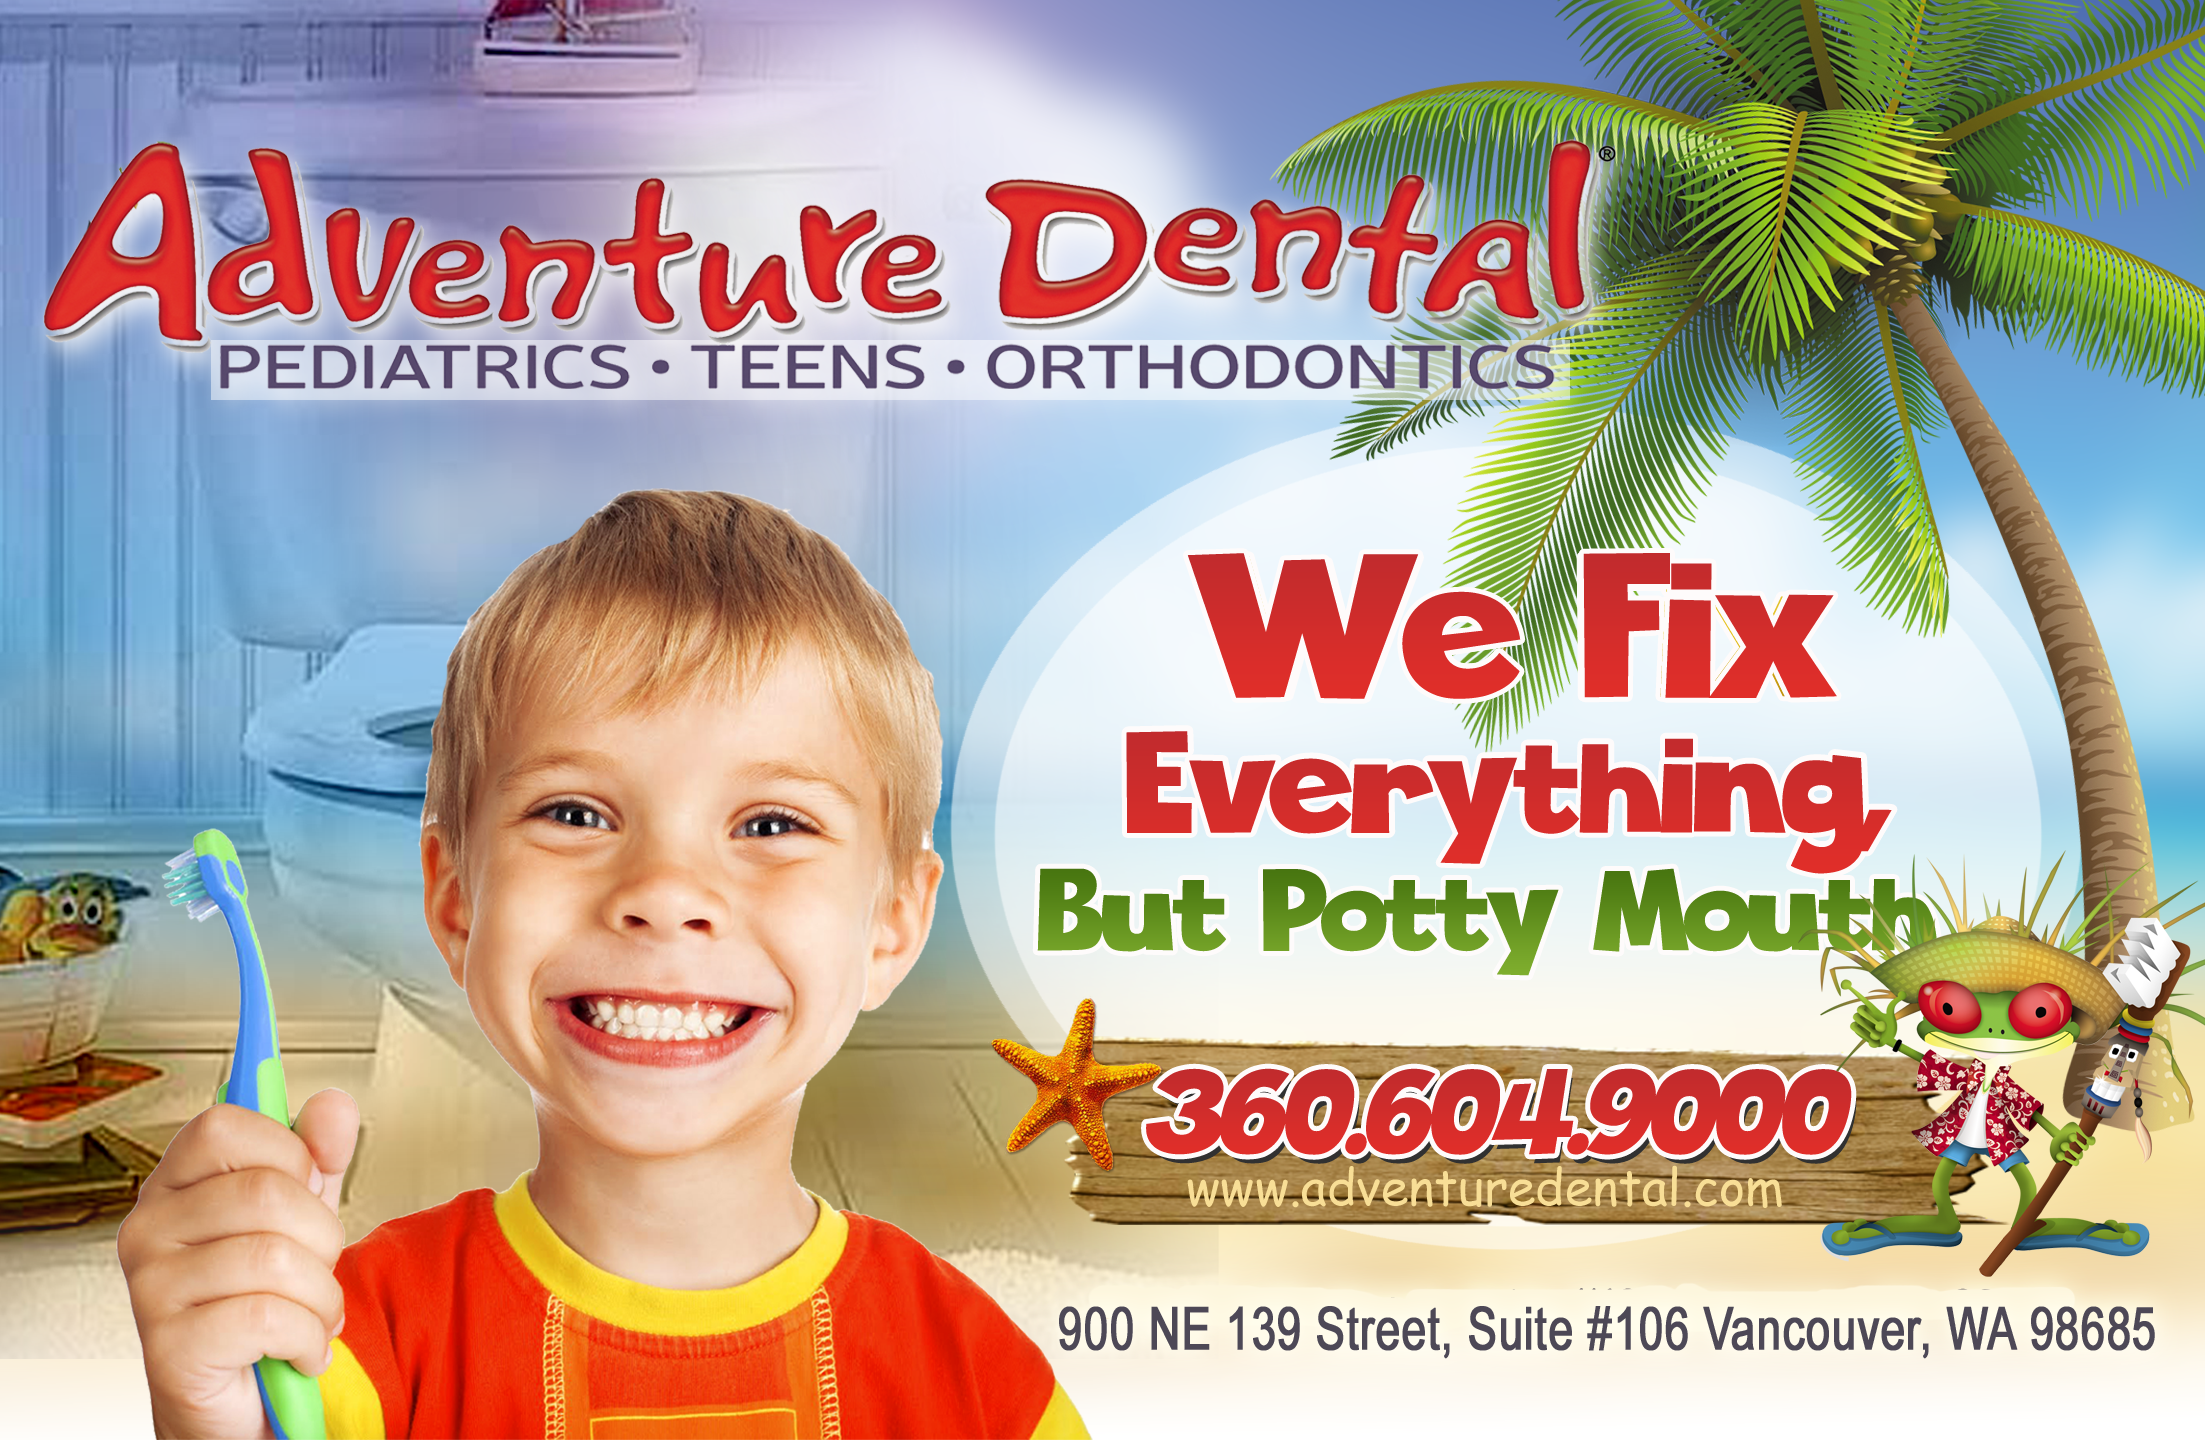 Half Page magazine ad for Fun, Colorful Island themed dental office!